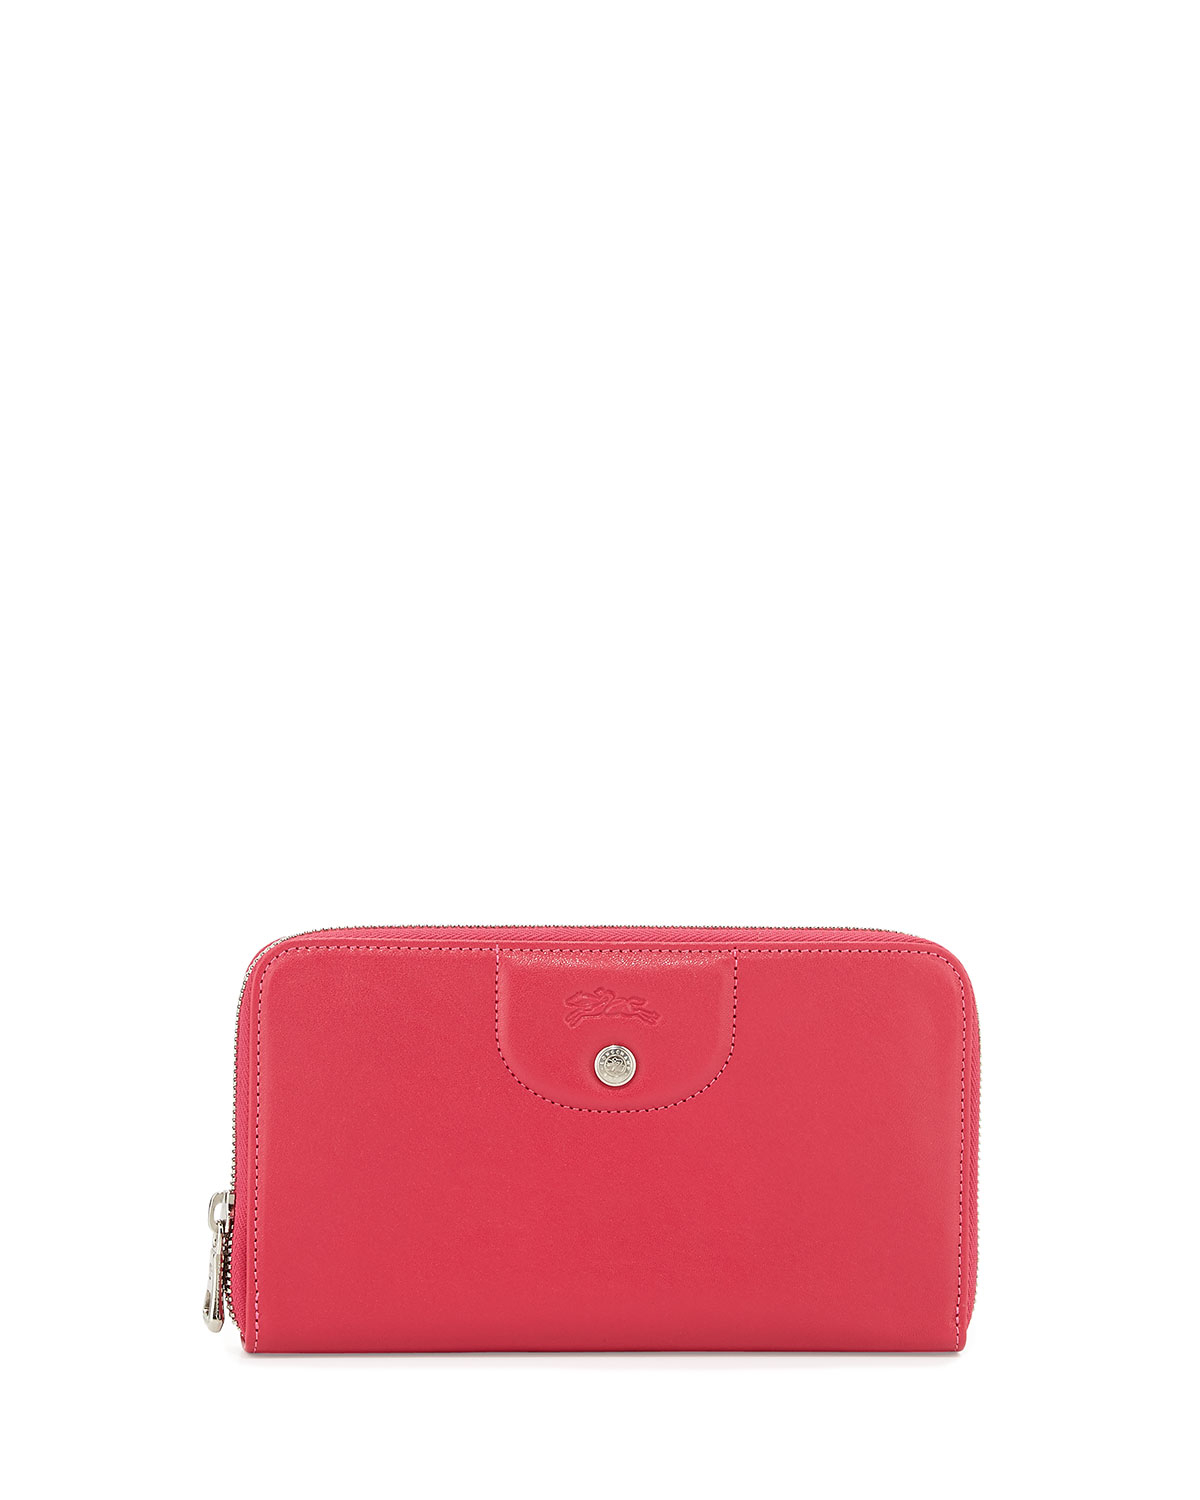 Longchamp Le Pliage Cuir Zip Around Leather Wallet In Pink